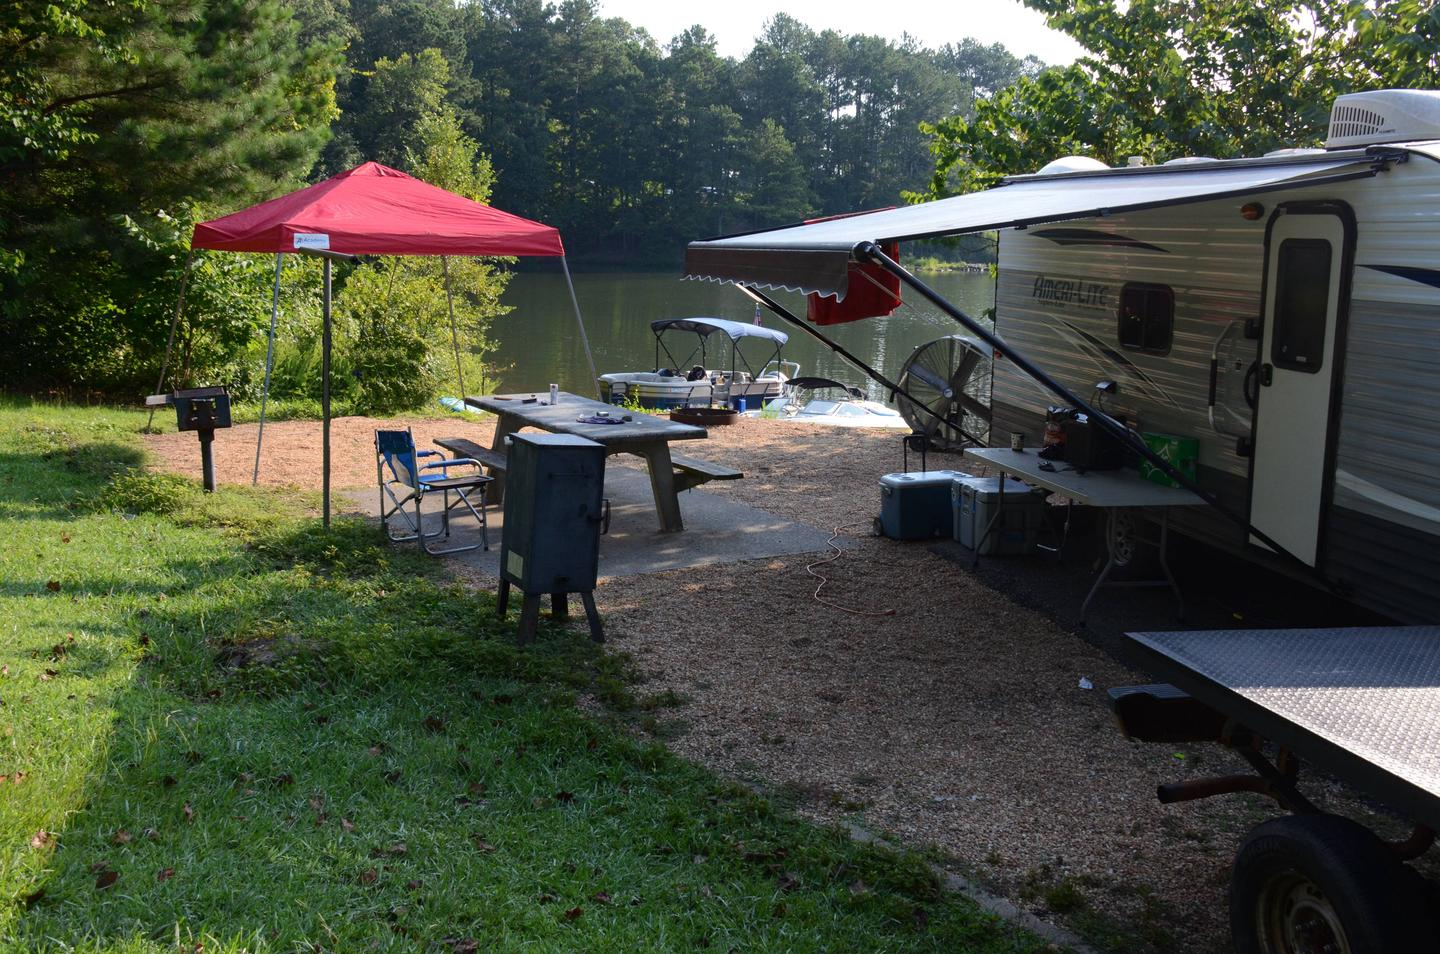 Awning-side clearance, campsite view.Payne Campground, campsite 005.